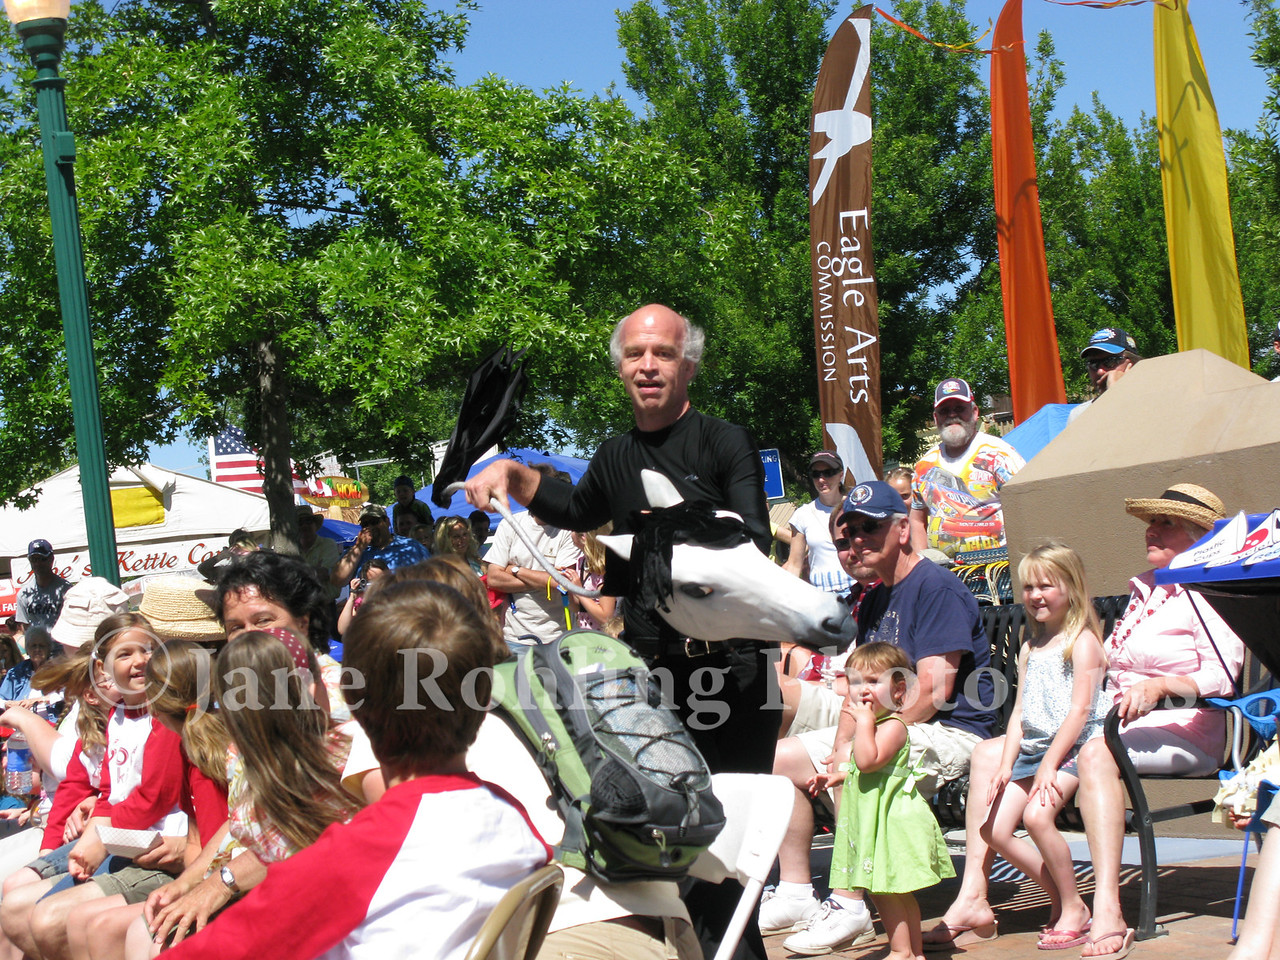 A performer entertains the crowd in Heritage Park in downtown Eagle, Idaho, during Eagle Fun Days.